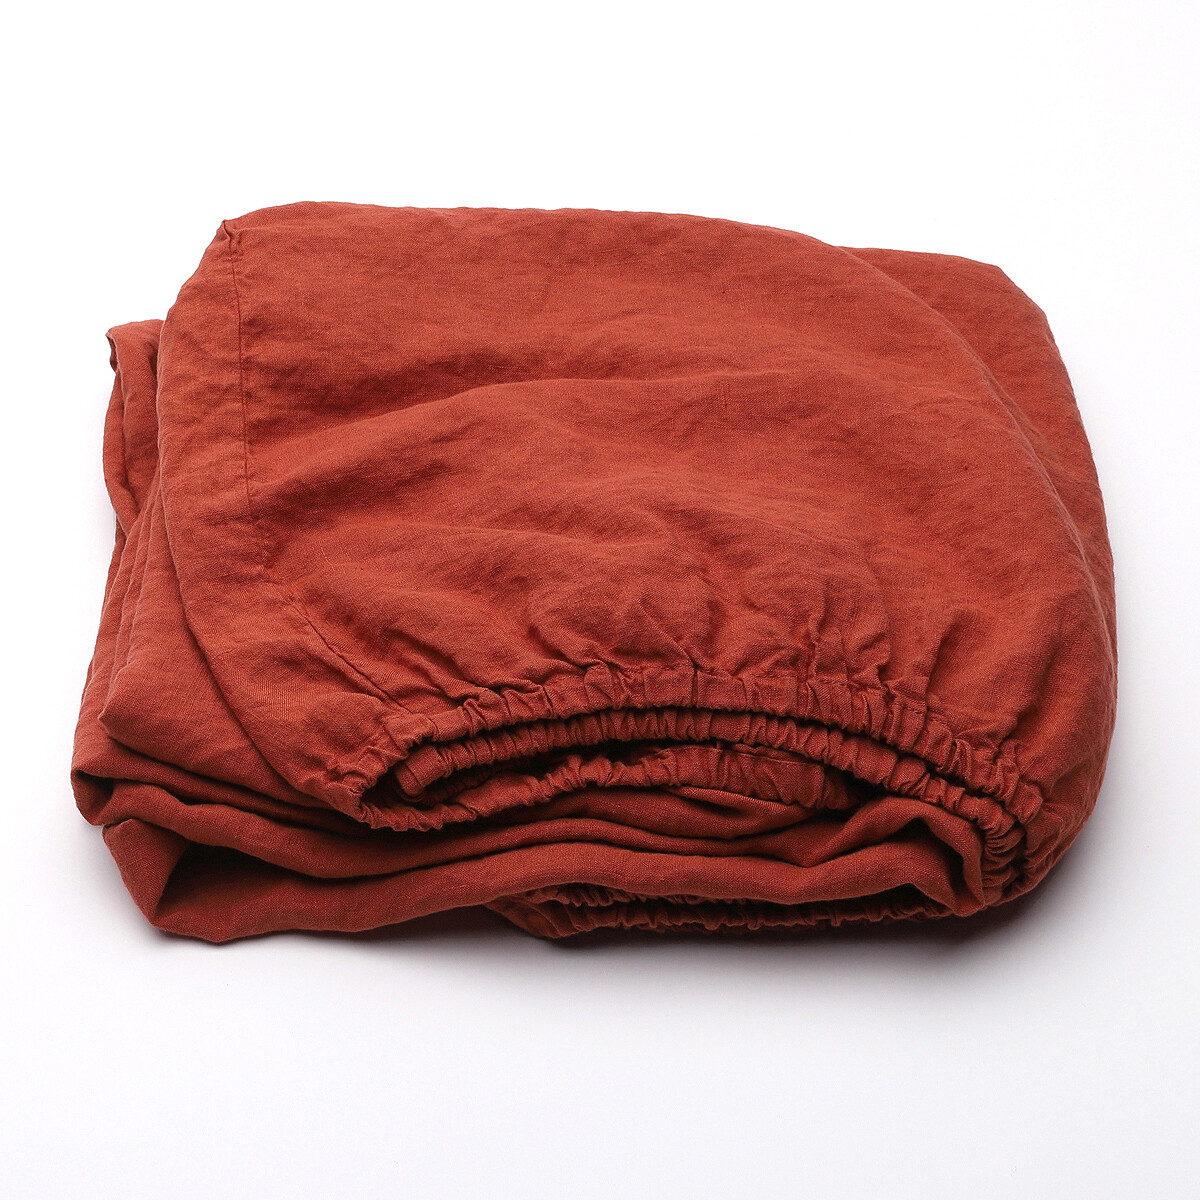 FITTED SHEET, 100% LINEN, STONE WASHED, BRICK